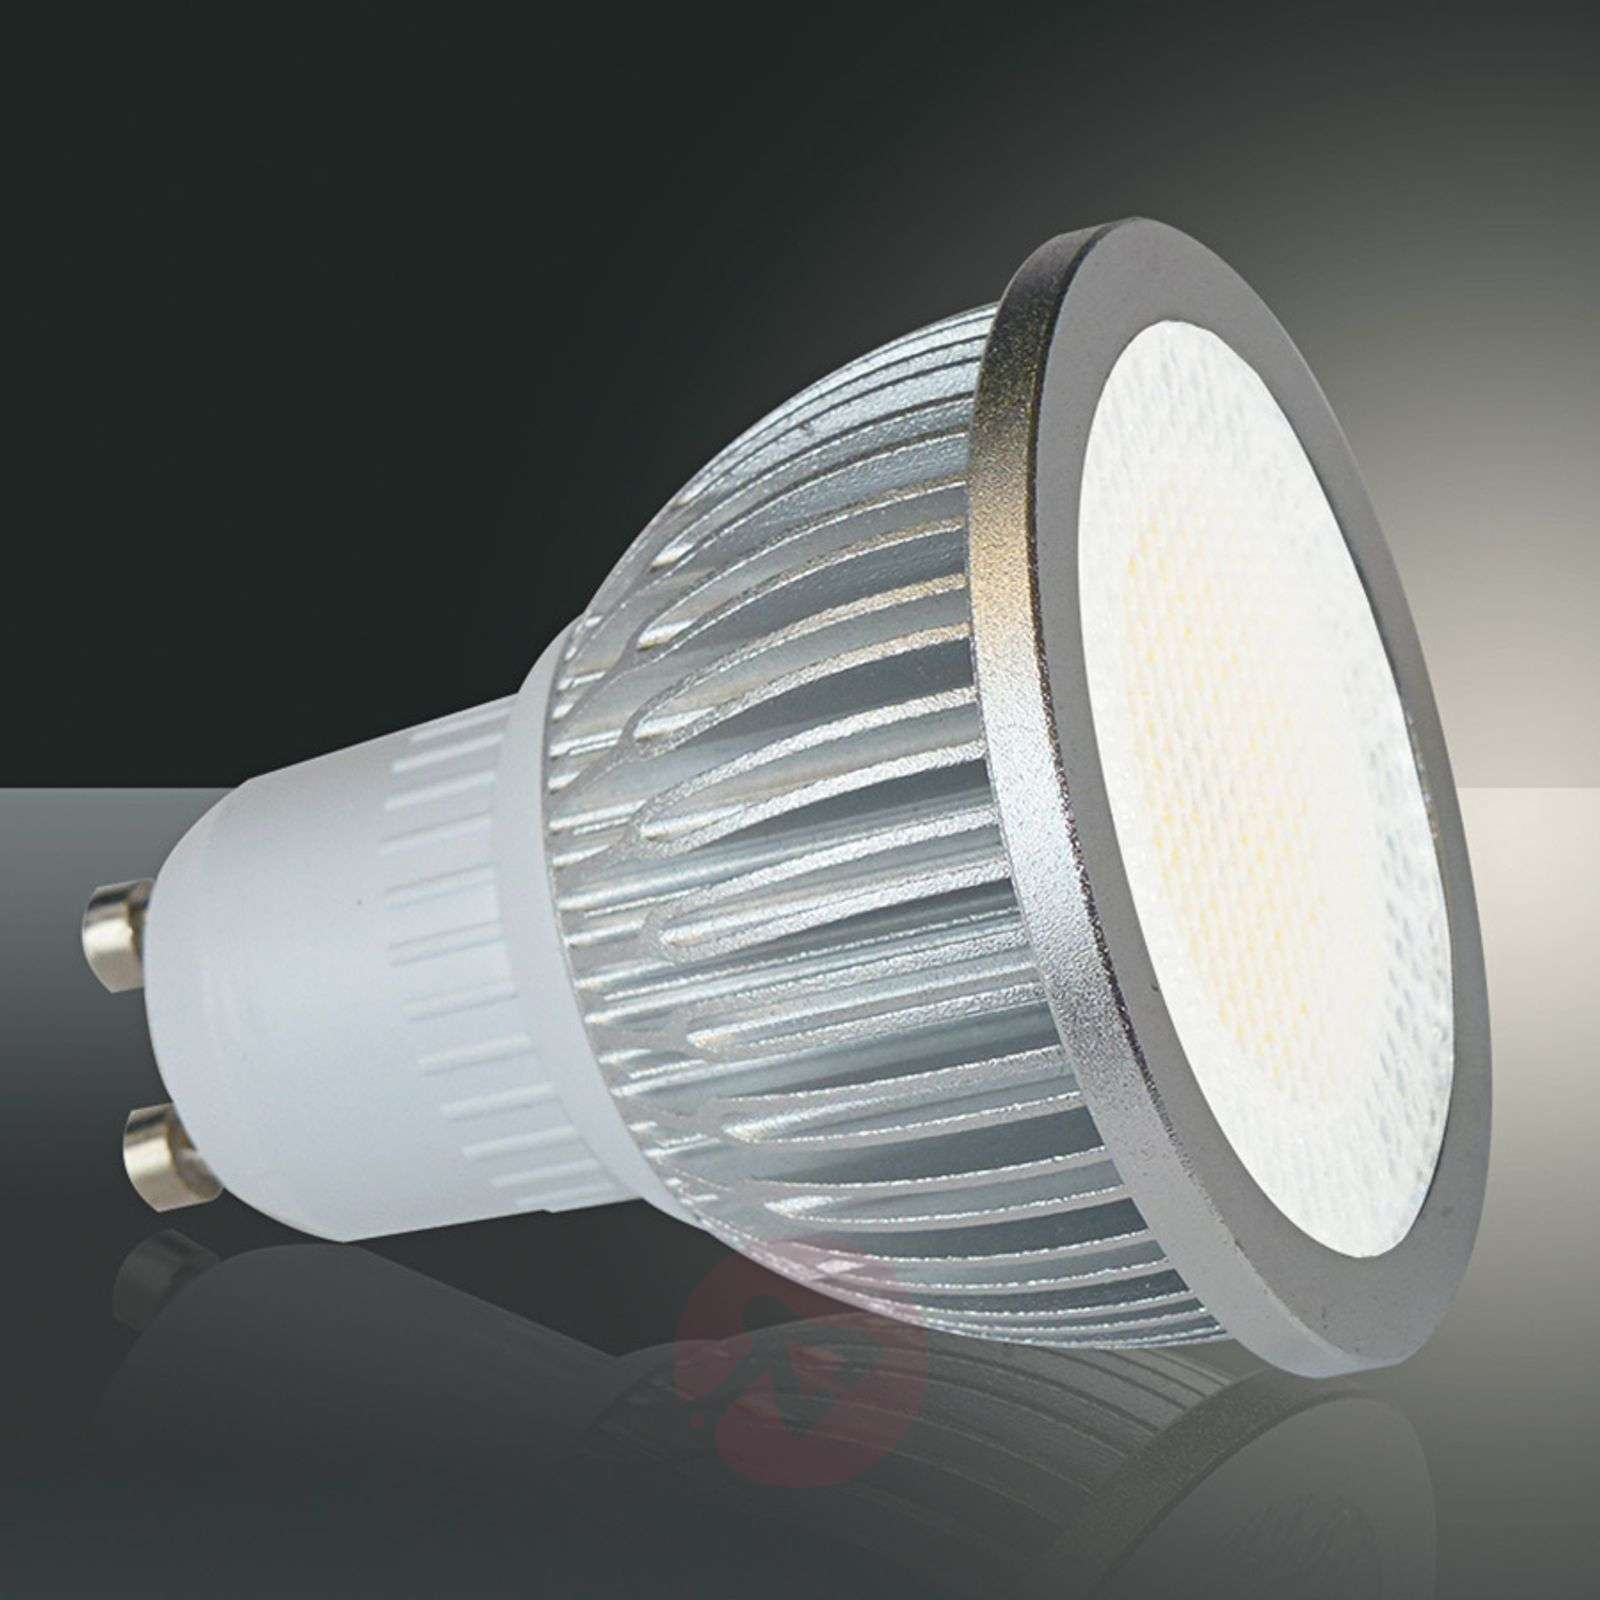 GU10 5W 830 high voltage LED reflector light, 90degree-9950358-02